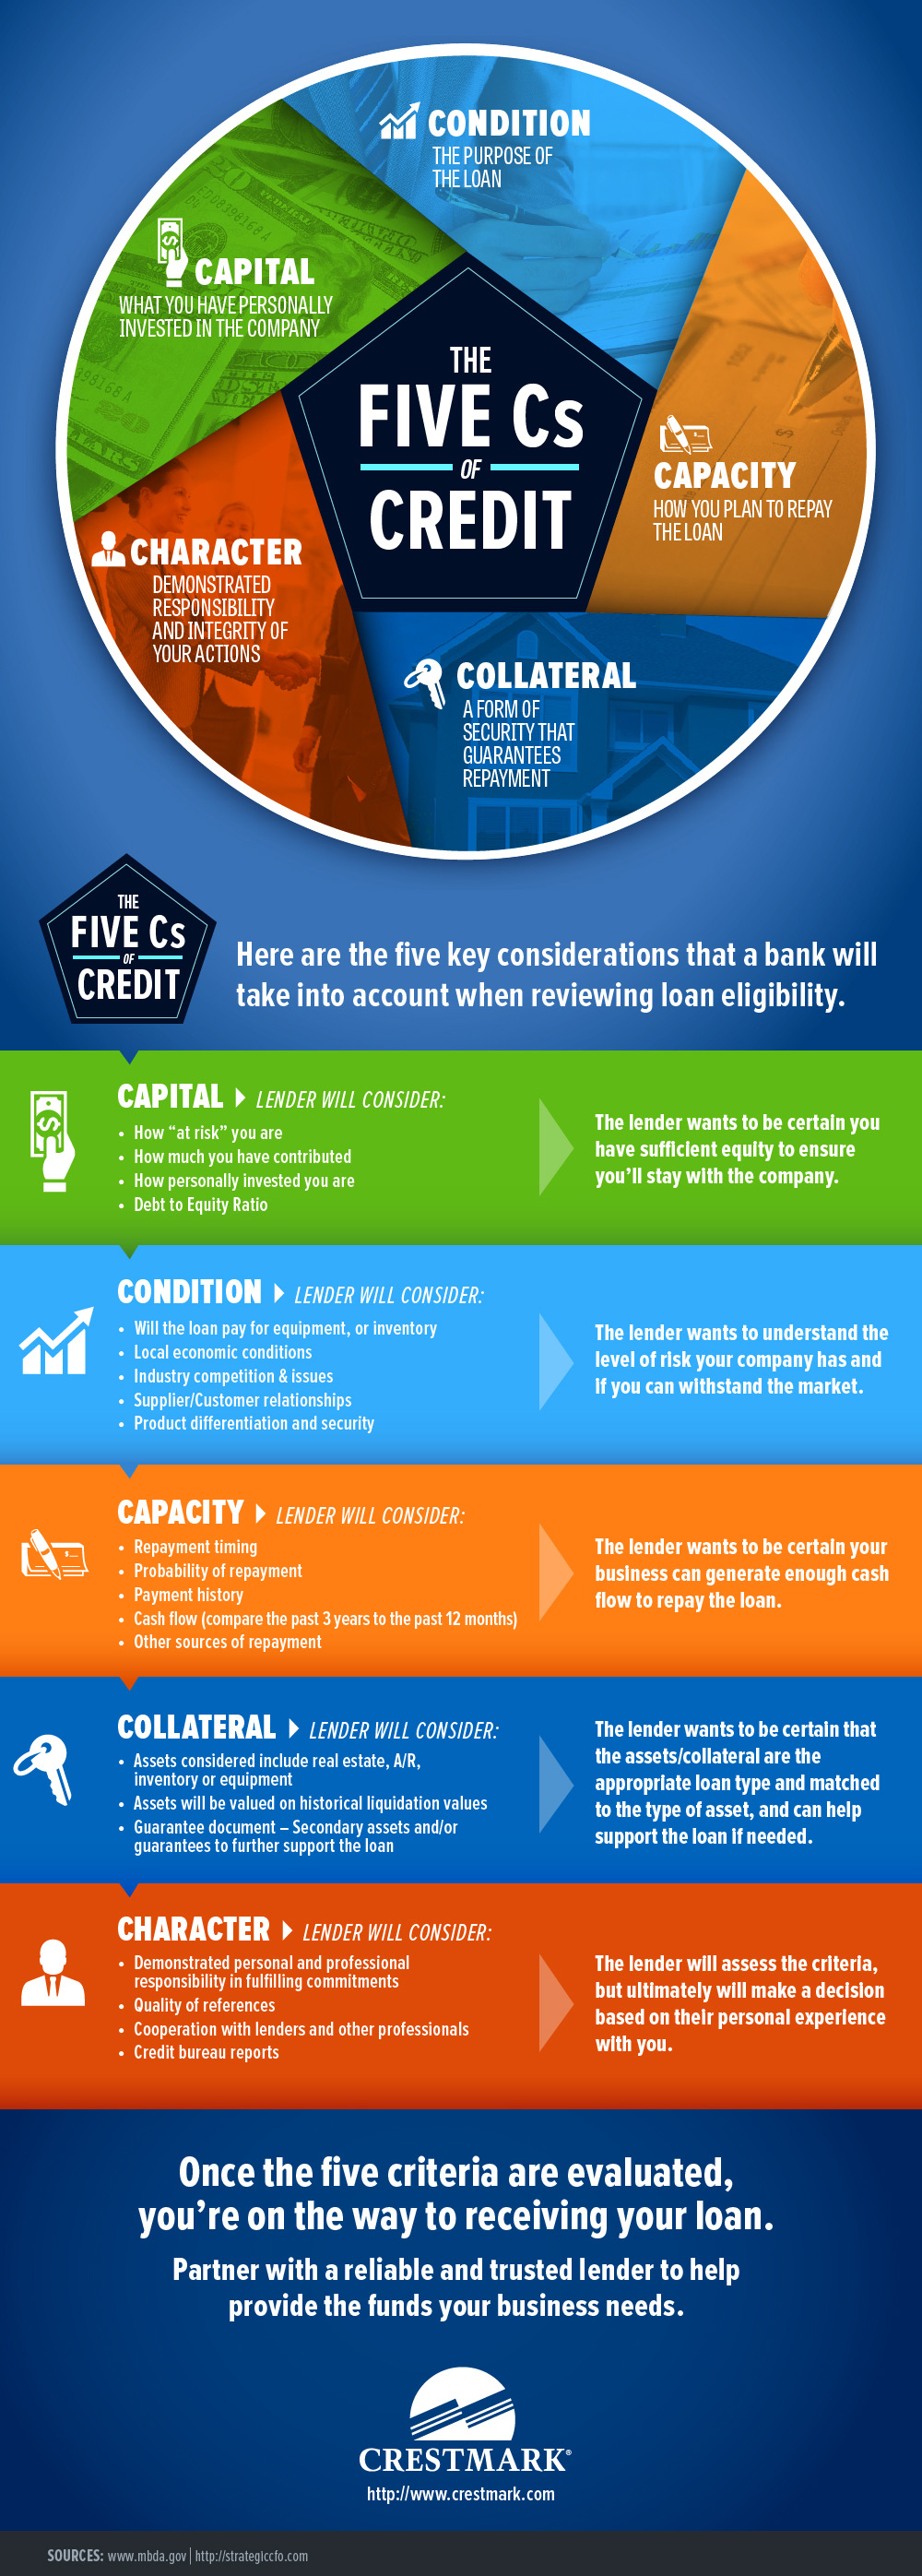 5cs of credit The 5 c's of credit are a common reference to the major elements of a banker's analysis when considering a request for a loan.